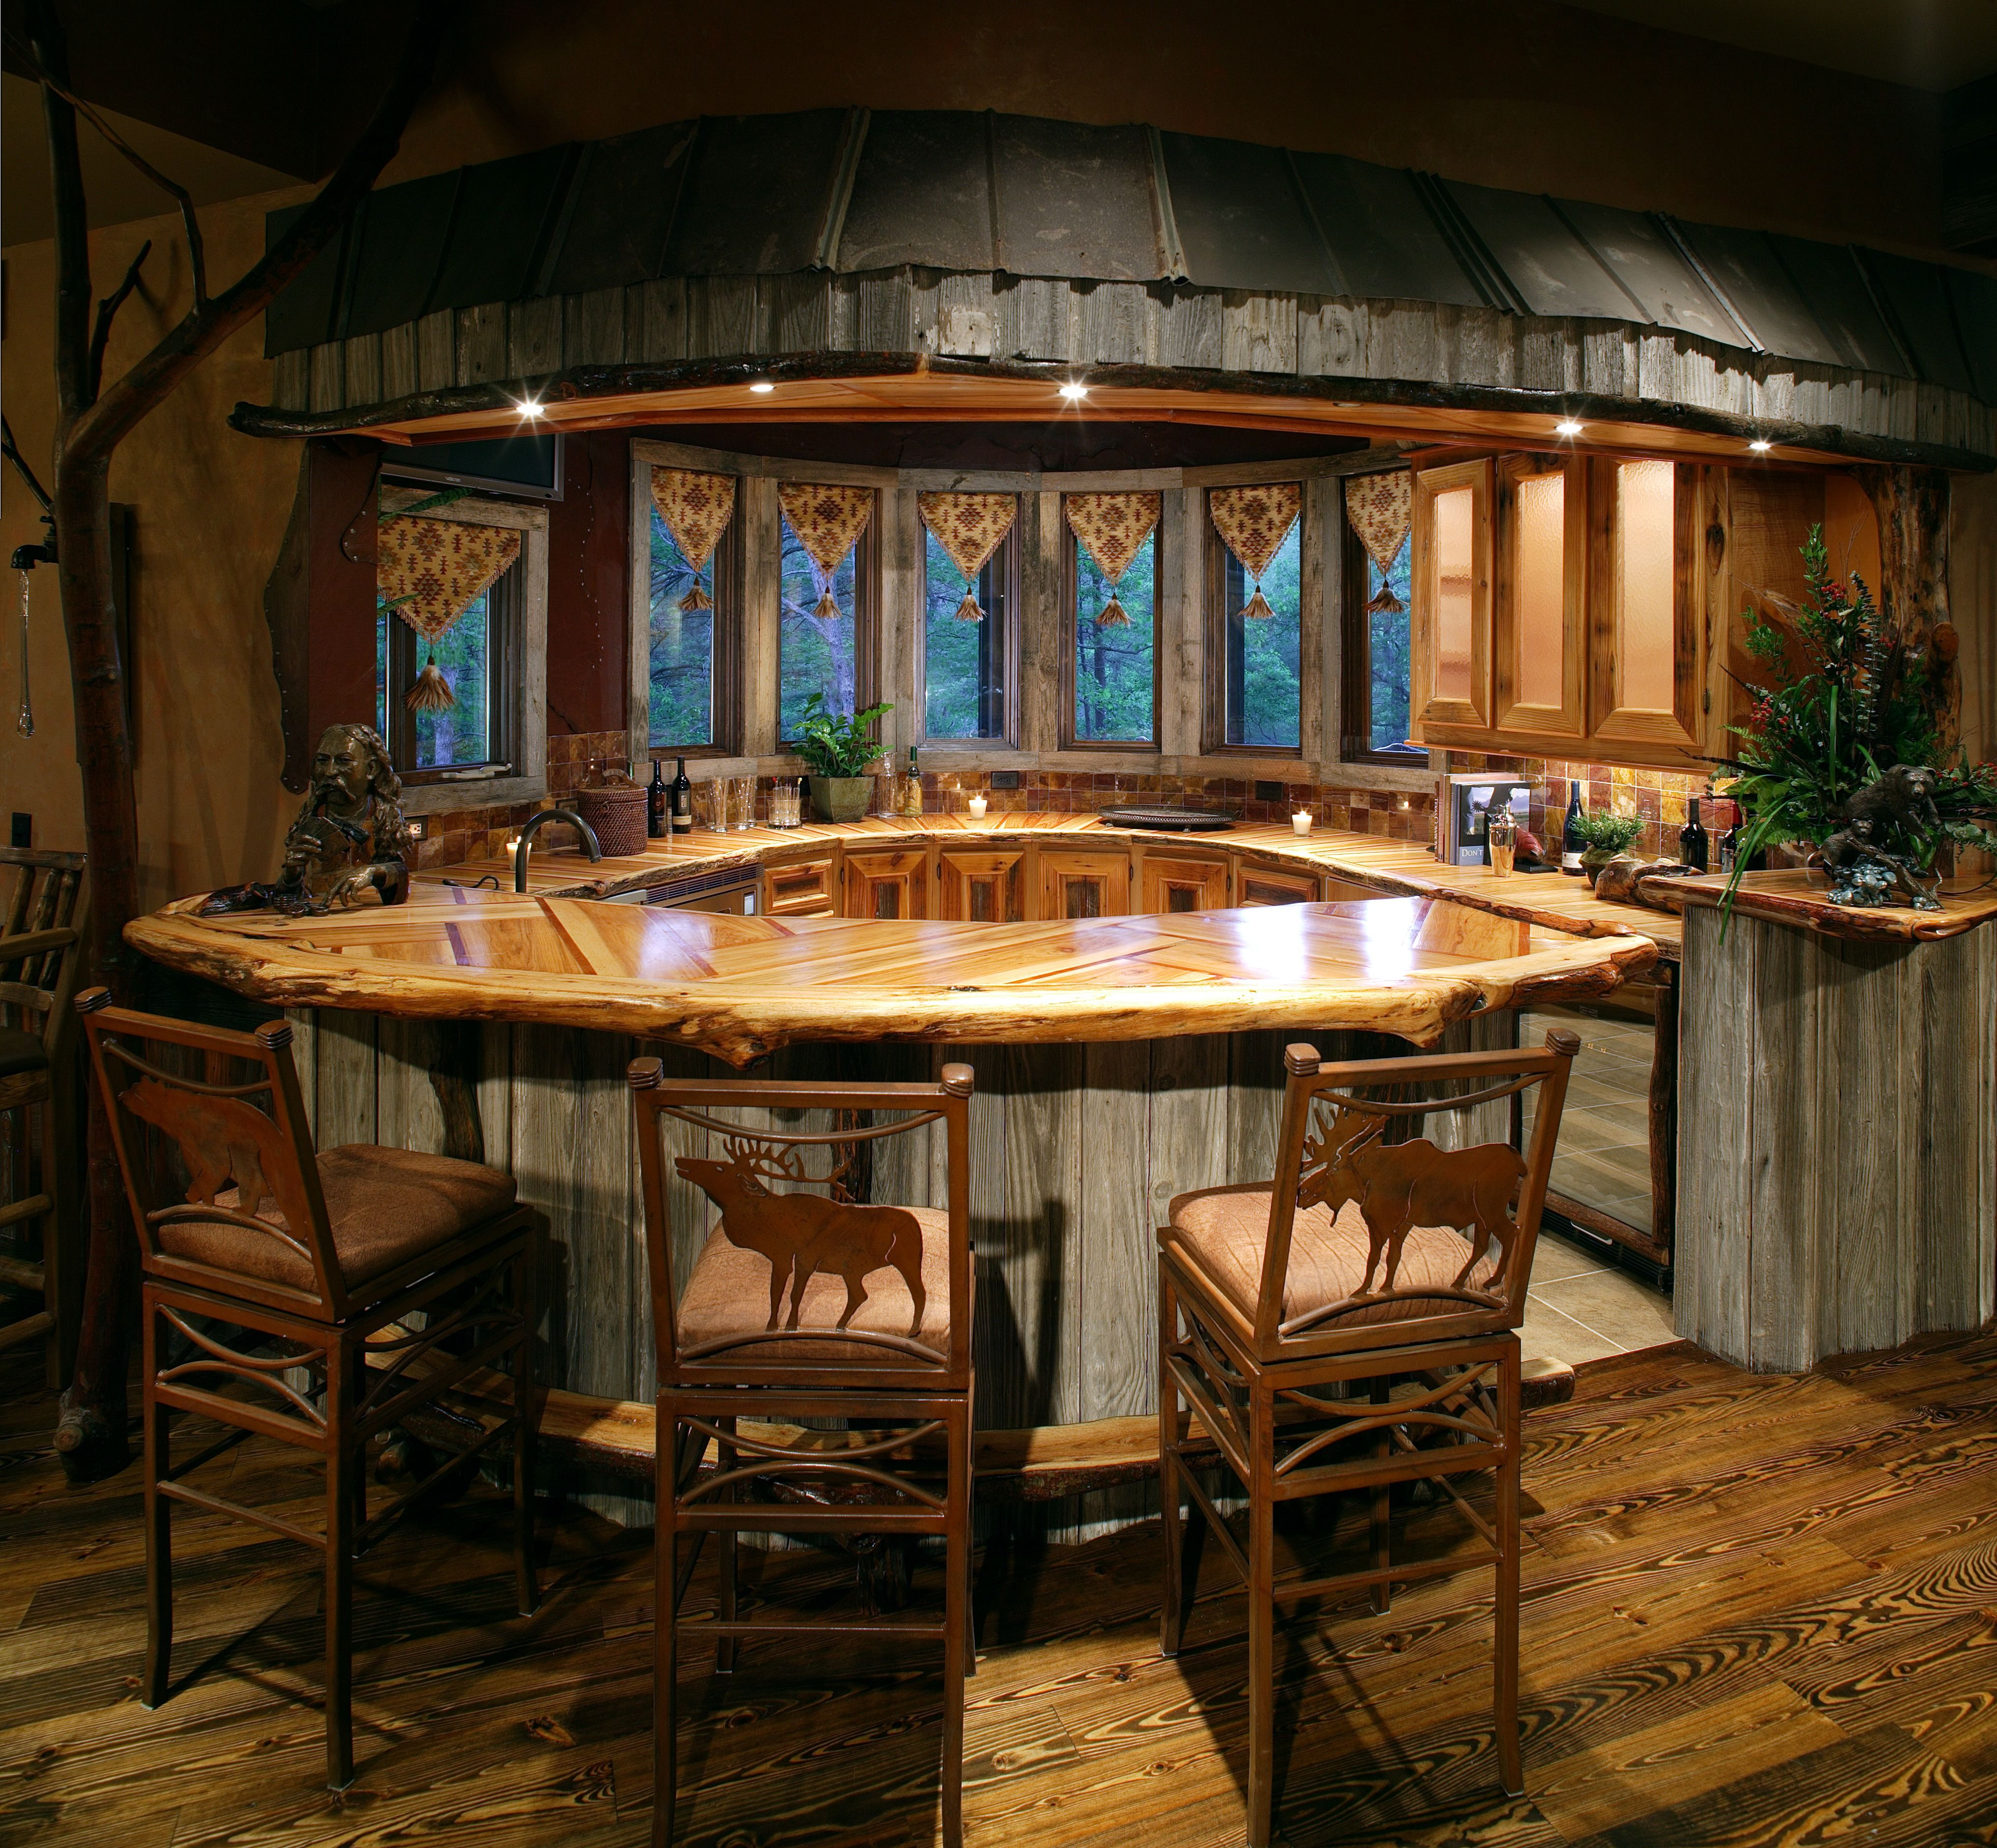 Rustic kitchen that is made for entertaining with the curved bar ...